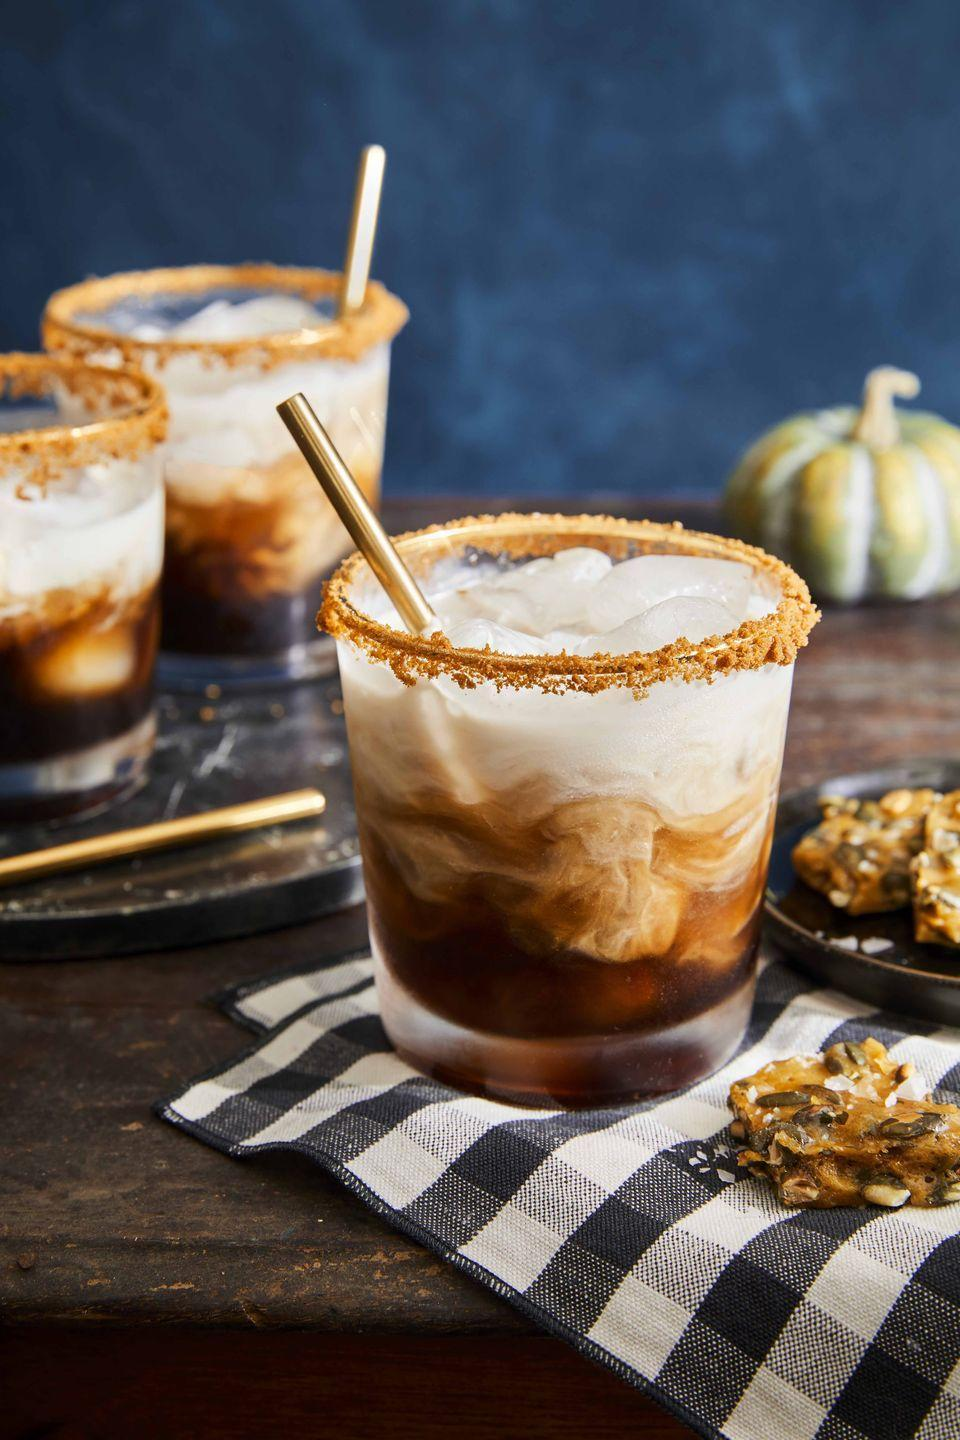 """<p>Greet guests with a drink that carries a touch of the season—and lets everyone relax while you put the finishing touches on dinner.</p><p><strong><a href=""""https://www.countryliving.com/food-drinks/a33944101/pumpkin-spice-white-russian/"""" rel=""""nofollow noopener"""" target=""""_blank"""" data-ylk=""""slk:Get the recipe"""" class=""""link rapid-noclick-resp"""">Get the recipe</a>.</strong> </p>"""